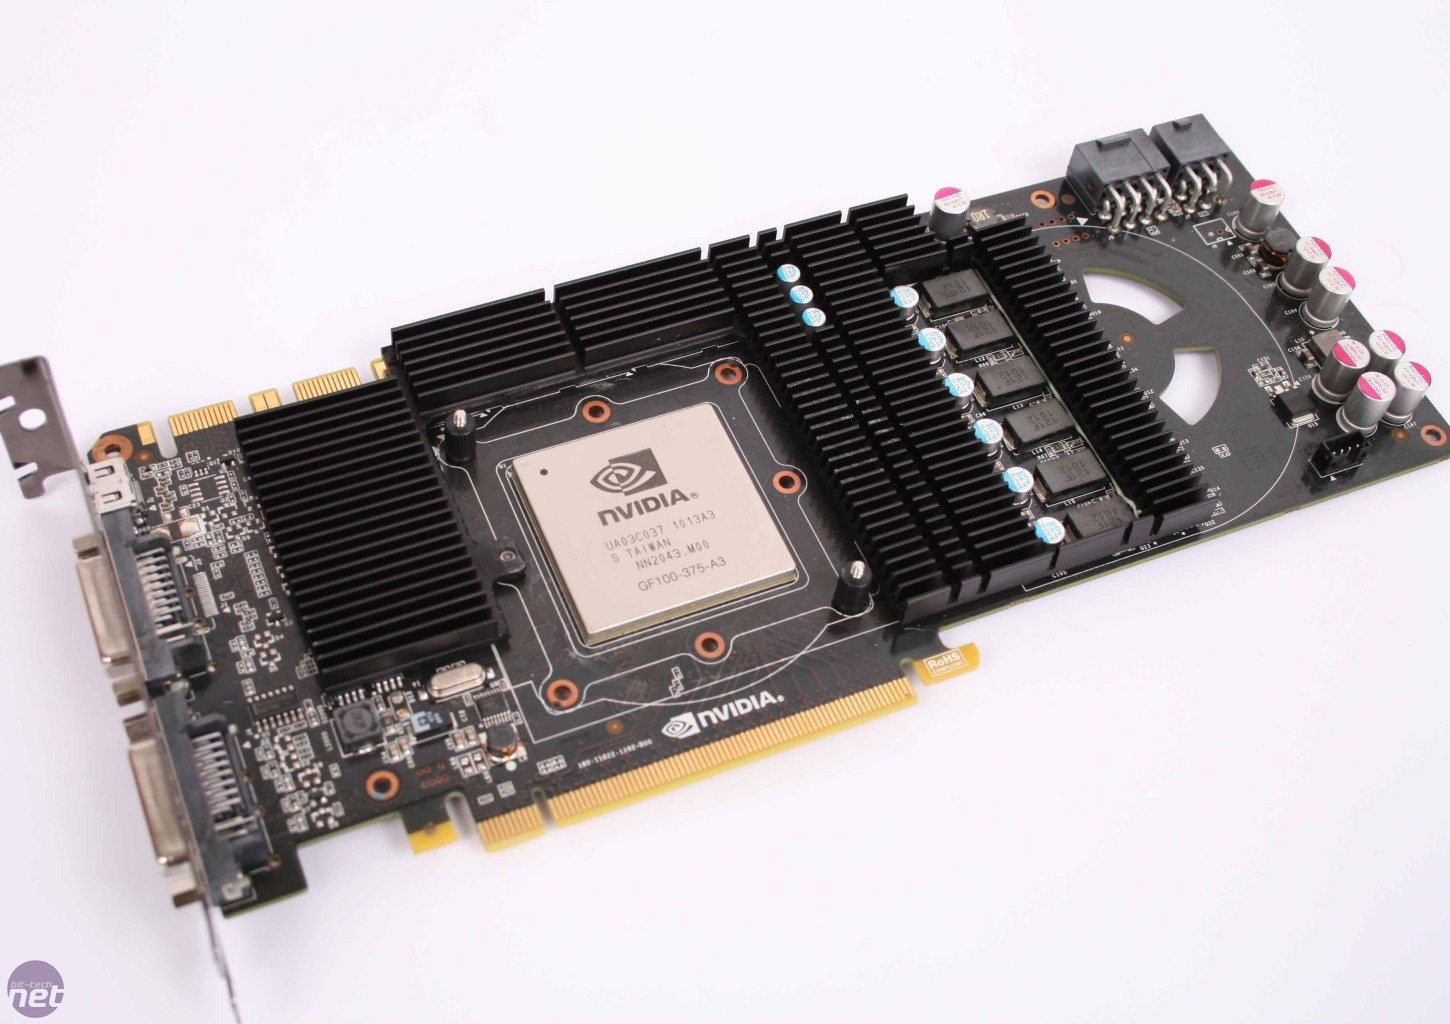 NVIDIA GeForce GTX 480: specs, reviews, review